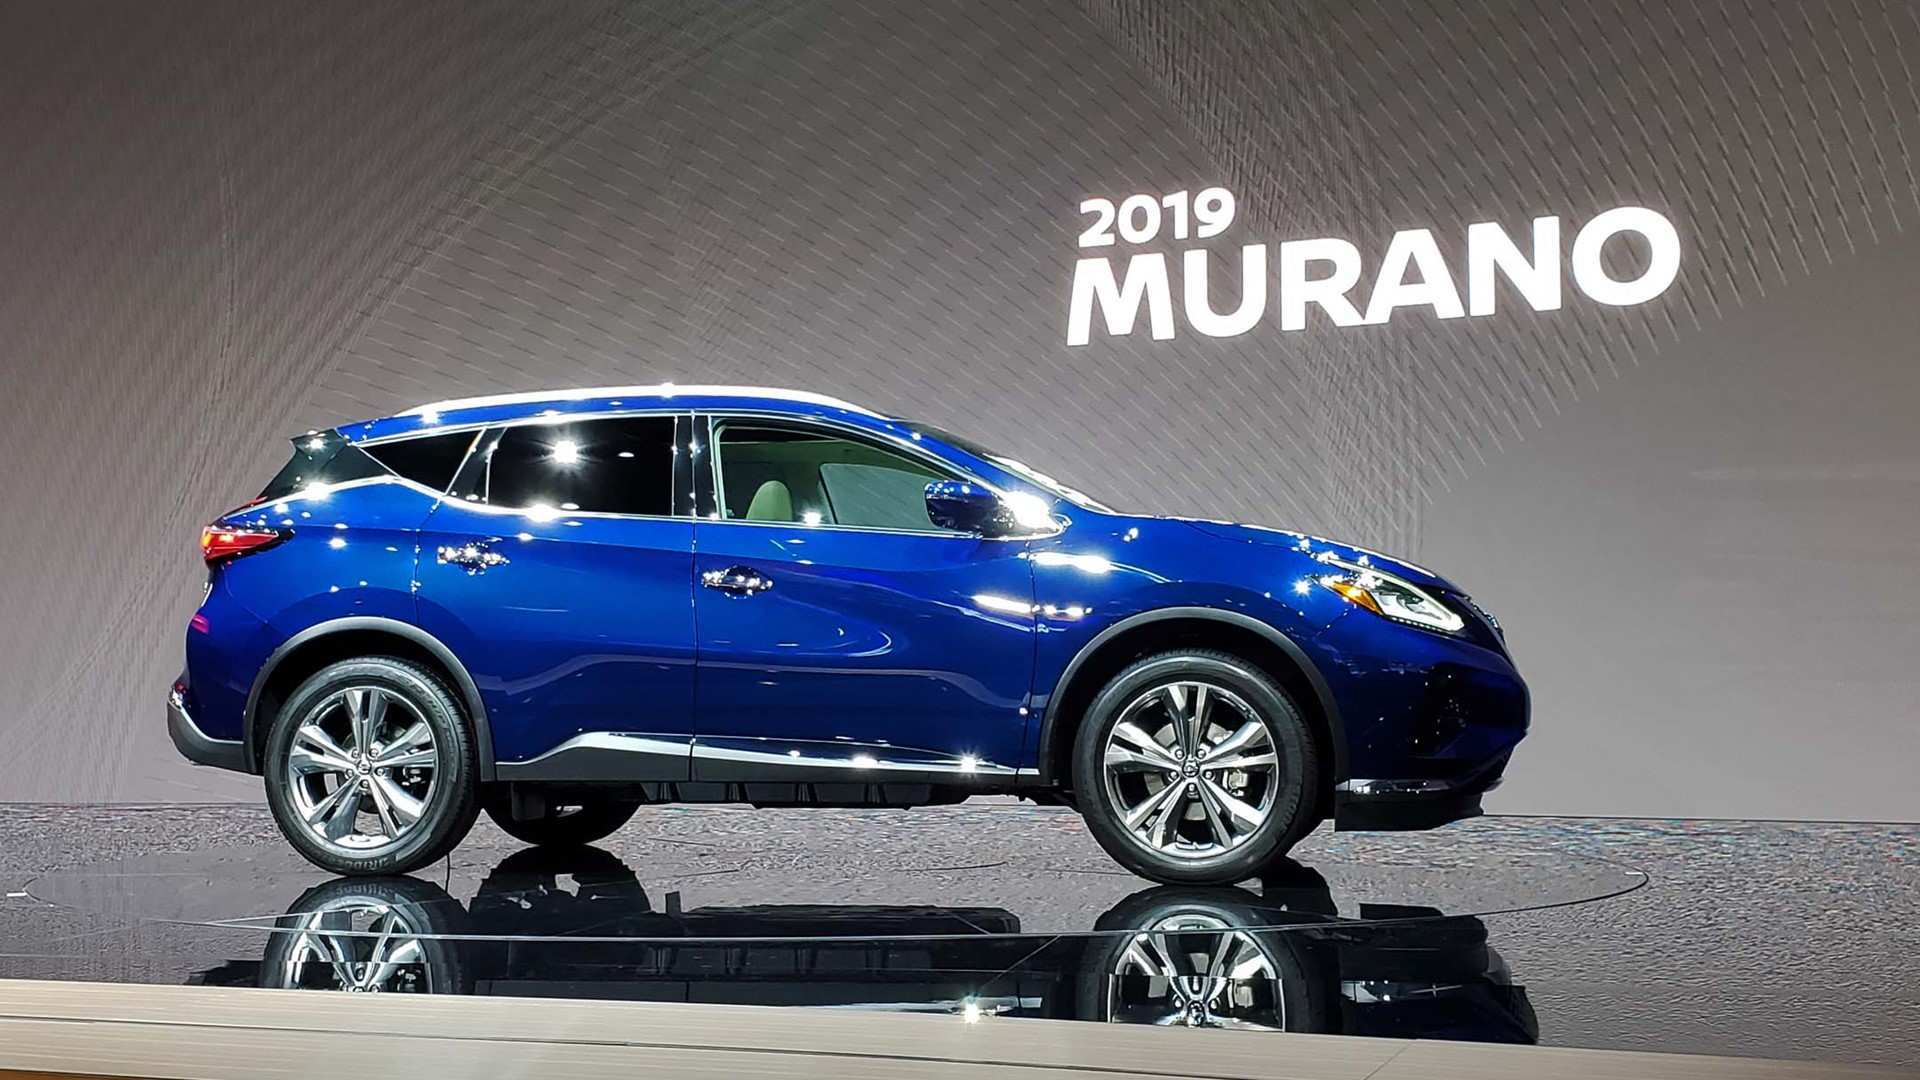 33 Great New Murano Nissan 2019 Picture Model with New Murano Nissan 2019 Picture